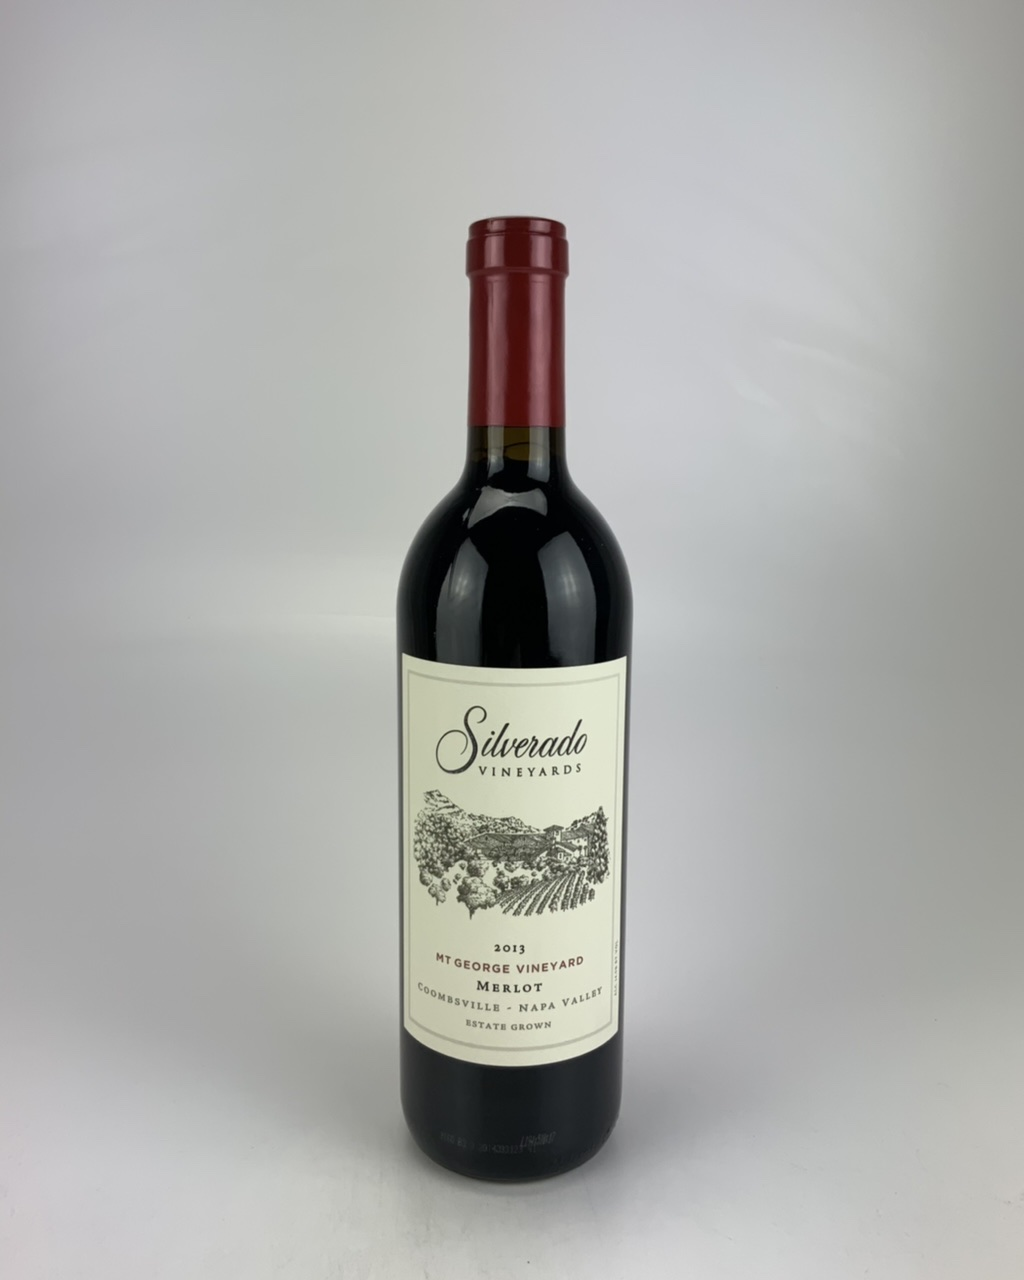 2013 Silverado Vineyards Mt. George Merlot